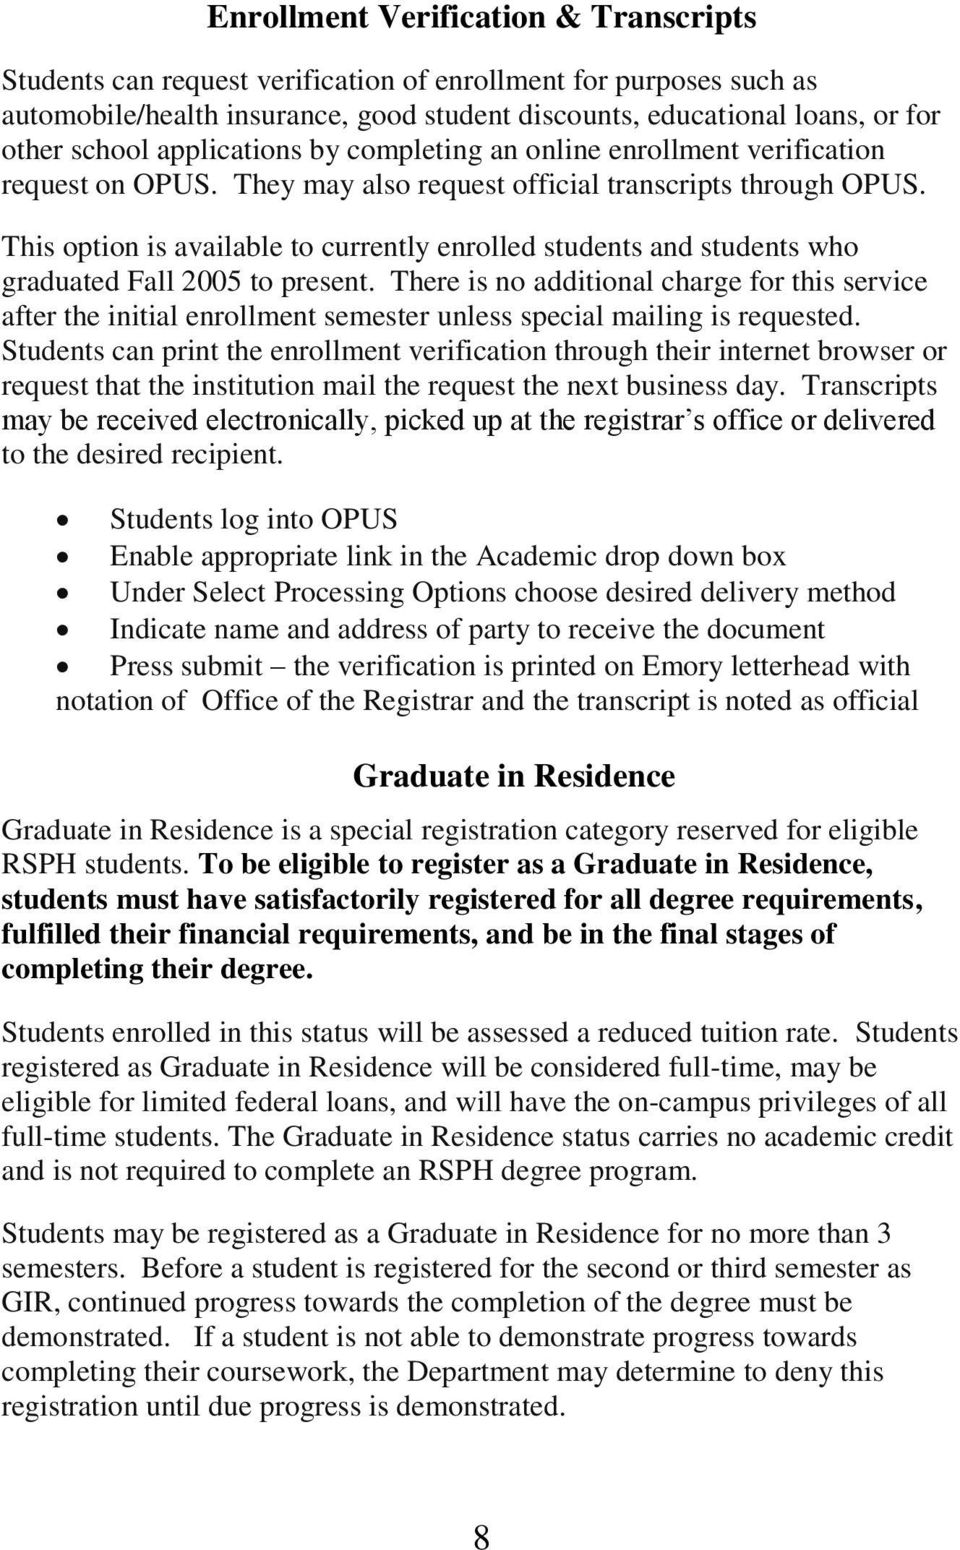 This option is available to currently enrolled students and students who graduated Fall 2005 to present.